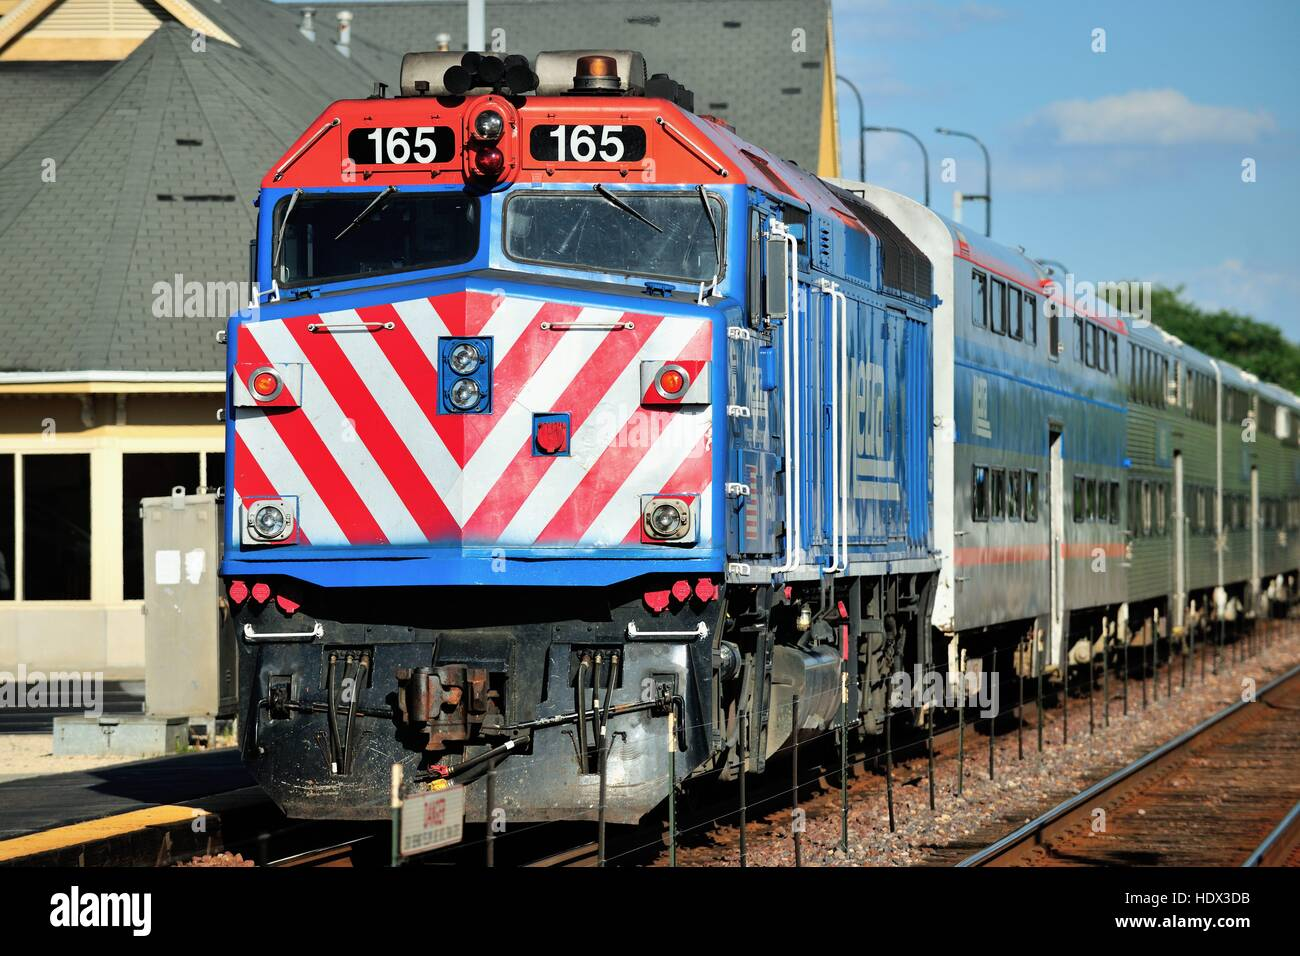 A Metra commuter train, using push-pull techniques arriving at Geneva, Illinois on its way to Chicago. - Stock Image